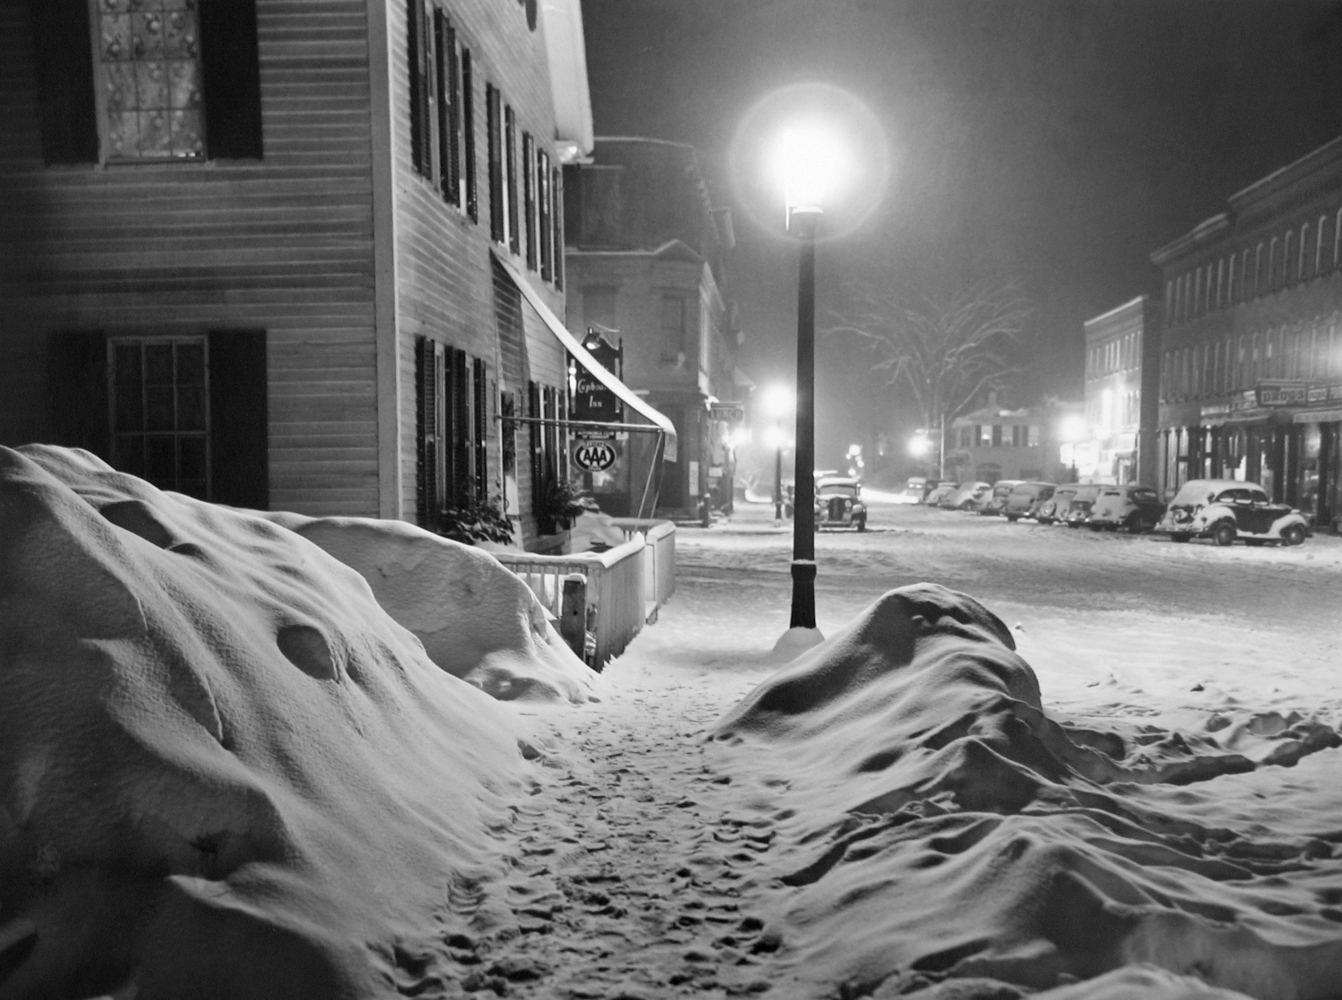 Marion Post Wolcott, After a Blizzard, Woodstock, VT, 1940 gelatin silver print, 8 x 10 inches